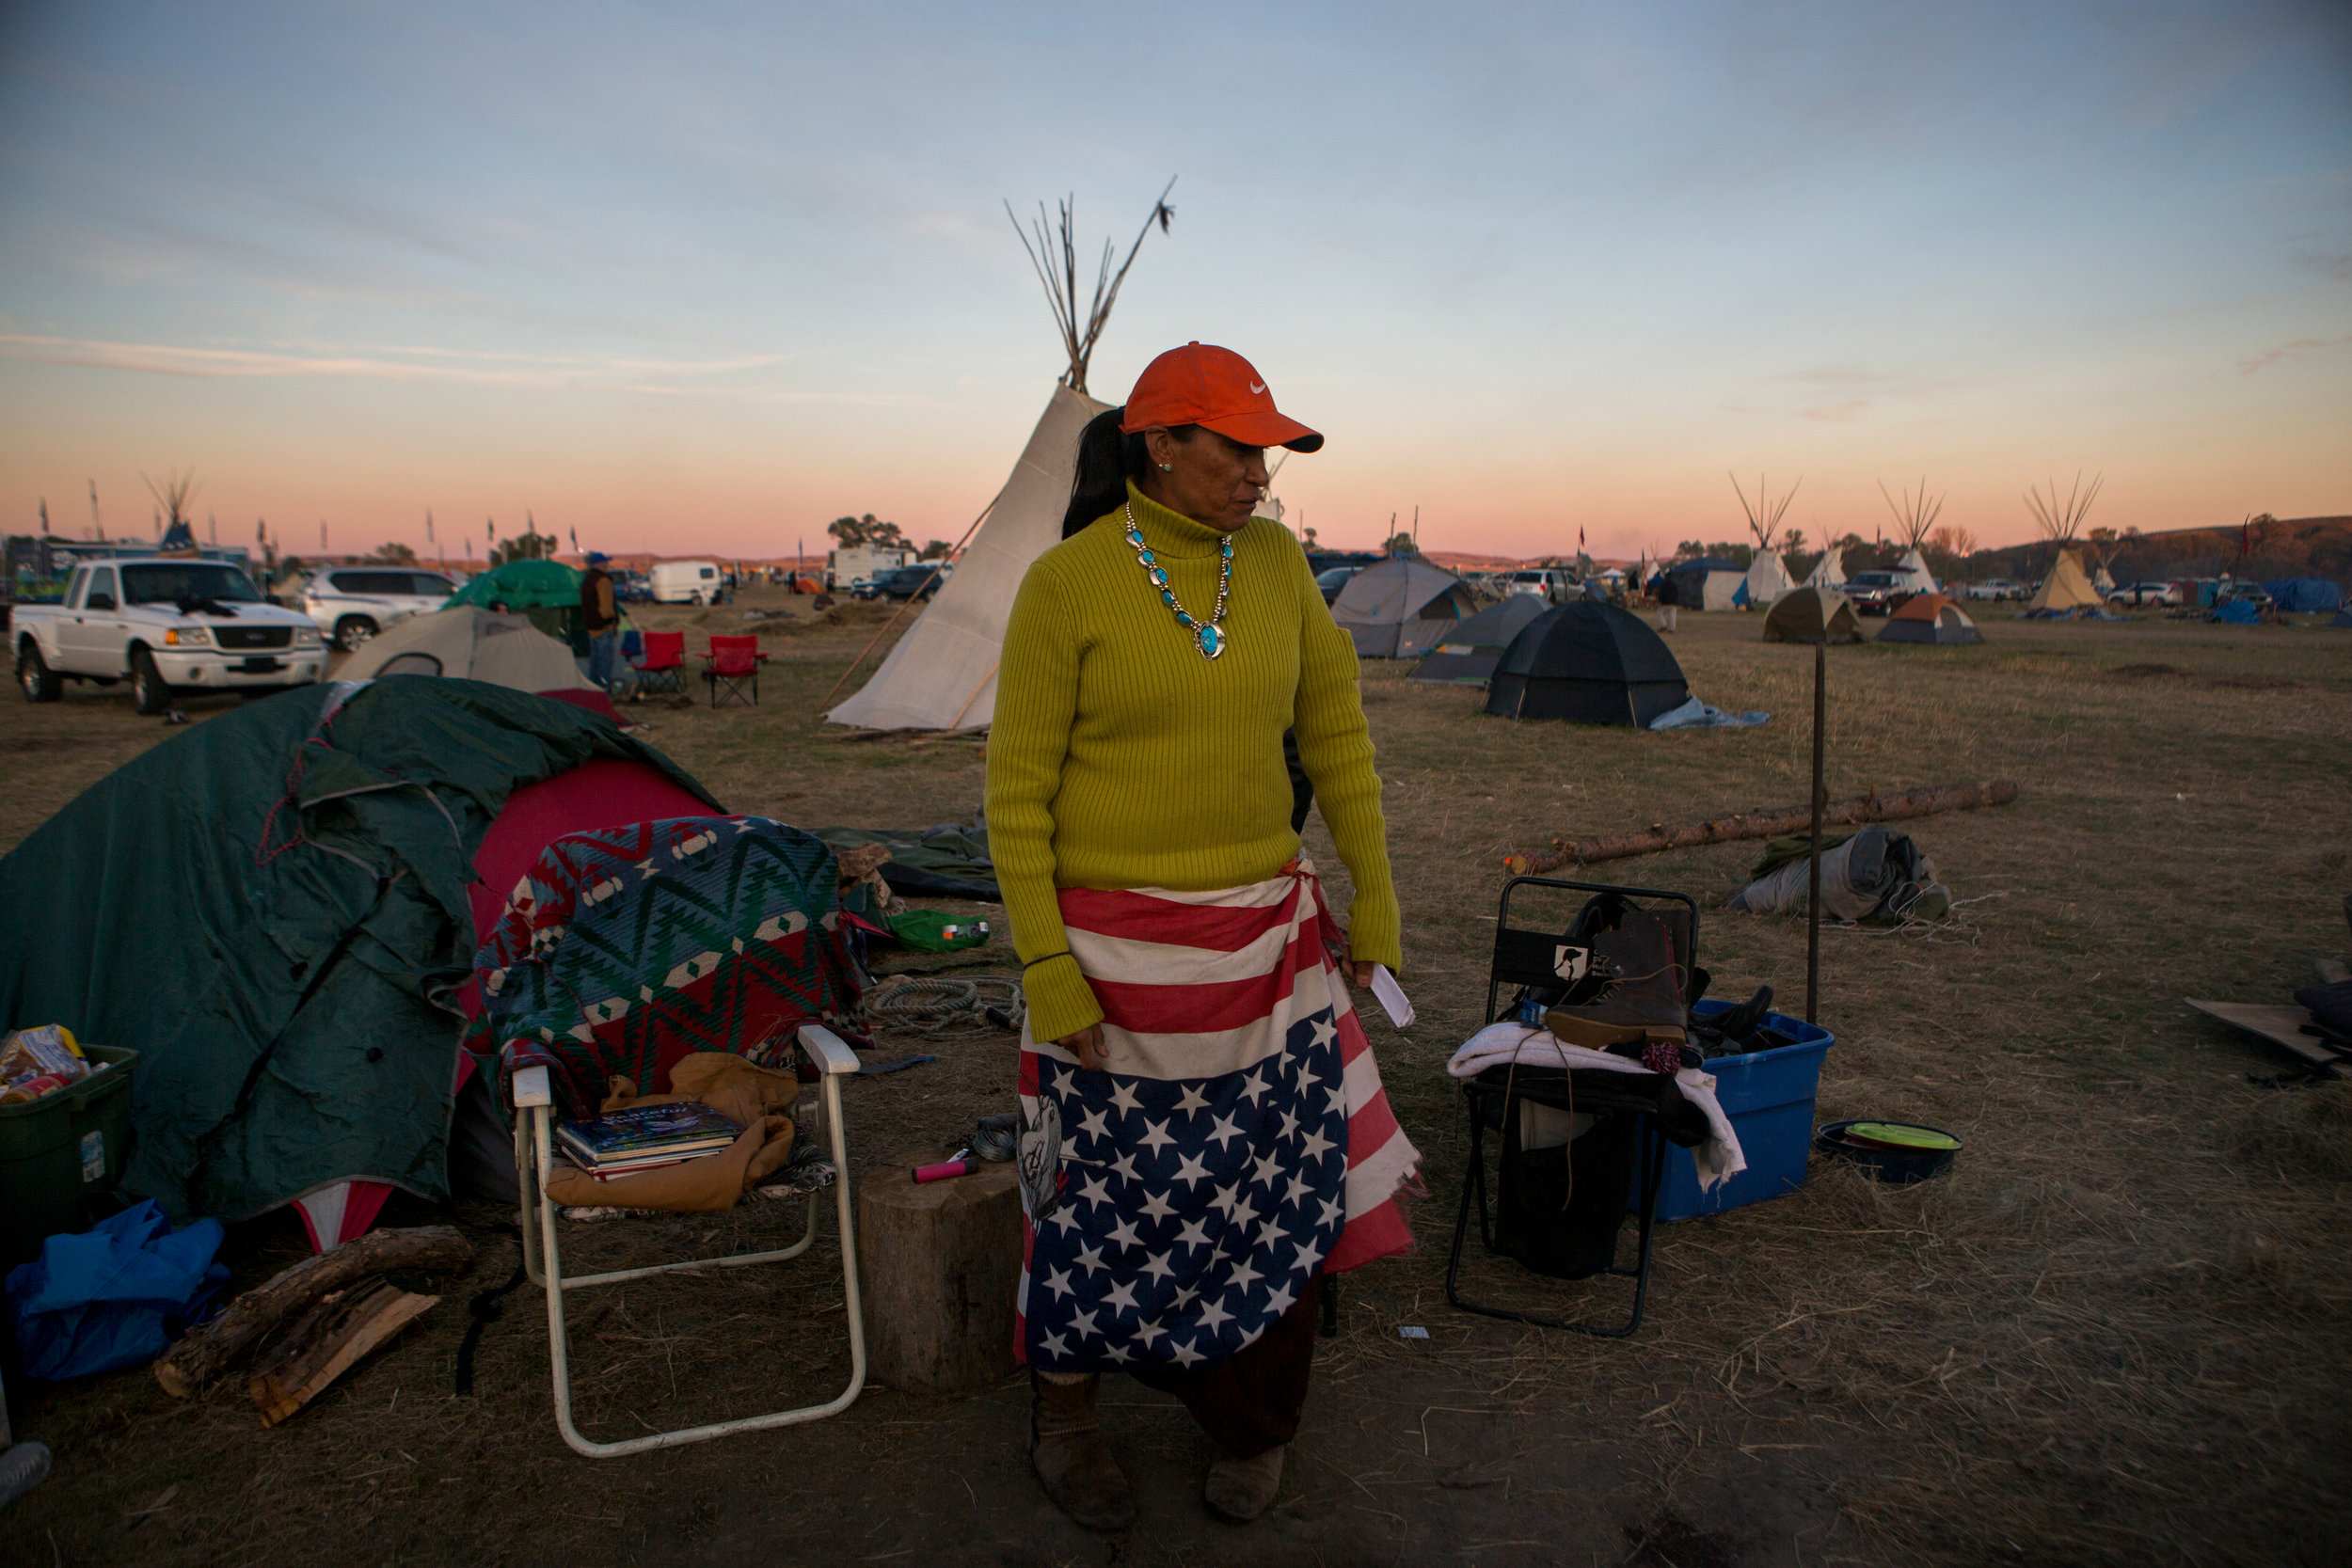 """Stacey Alkire, of Standing Rock Sioux Tribe, currently living in Denver, has been at the Seven Councils Camp for five weeks. Alkire said she was compelled to support her relatives at the camp """"because I'm tired of the govermenting screwing the Natives. They don't create balance with us."""" She continues, """"All we want them to do is honor our treaties. I know this is a poverty-stricken place. But this is a beautiful place. We've never been honored. We've never been respected."""" Saturday marked the 60th day of protest encampments surrounding the Dakota Access Pipeline near Cannon Ball, North Dakota. Law enforcement has reached out to federal agencies for both monetary and personnel assistance. Tensions have flared in recent weeks between law enforcement and protestors, as well as between private security and protestors. Kristina Barker for The New York Times"""